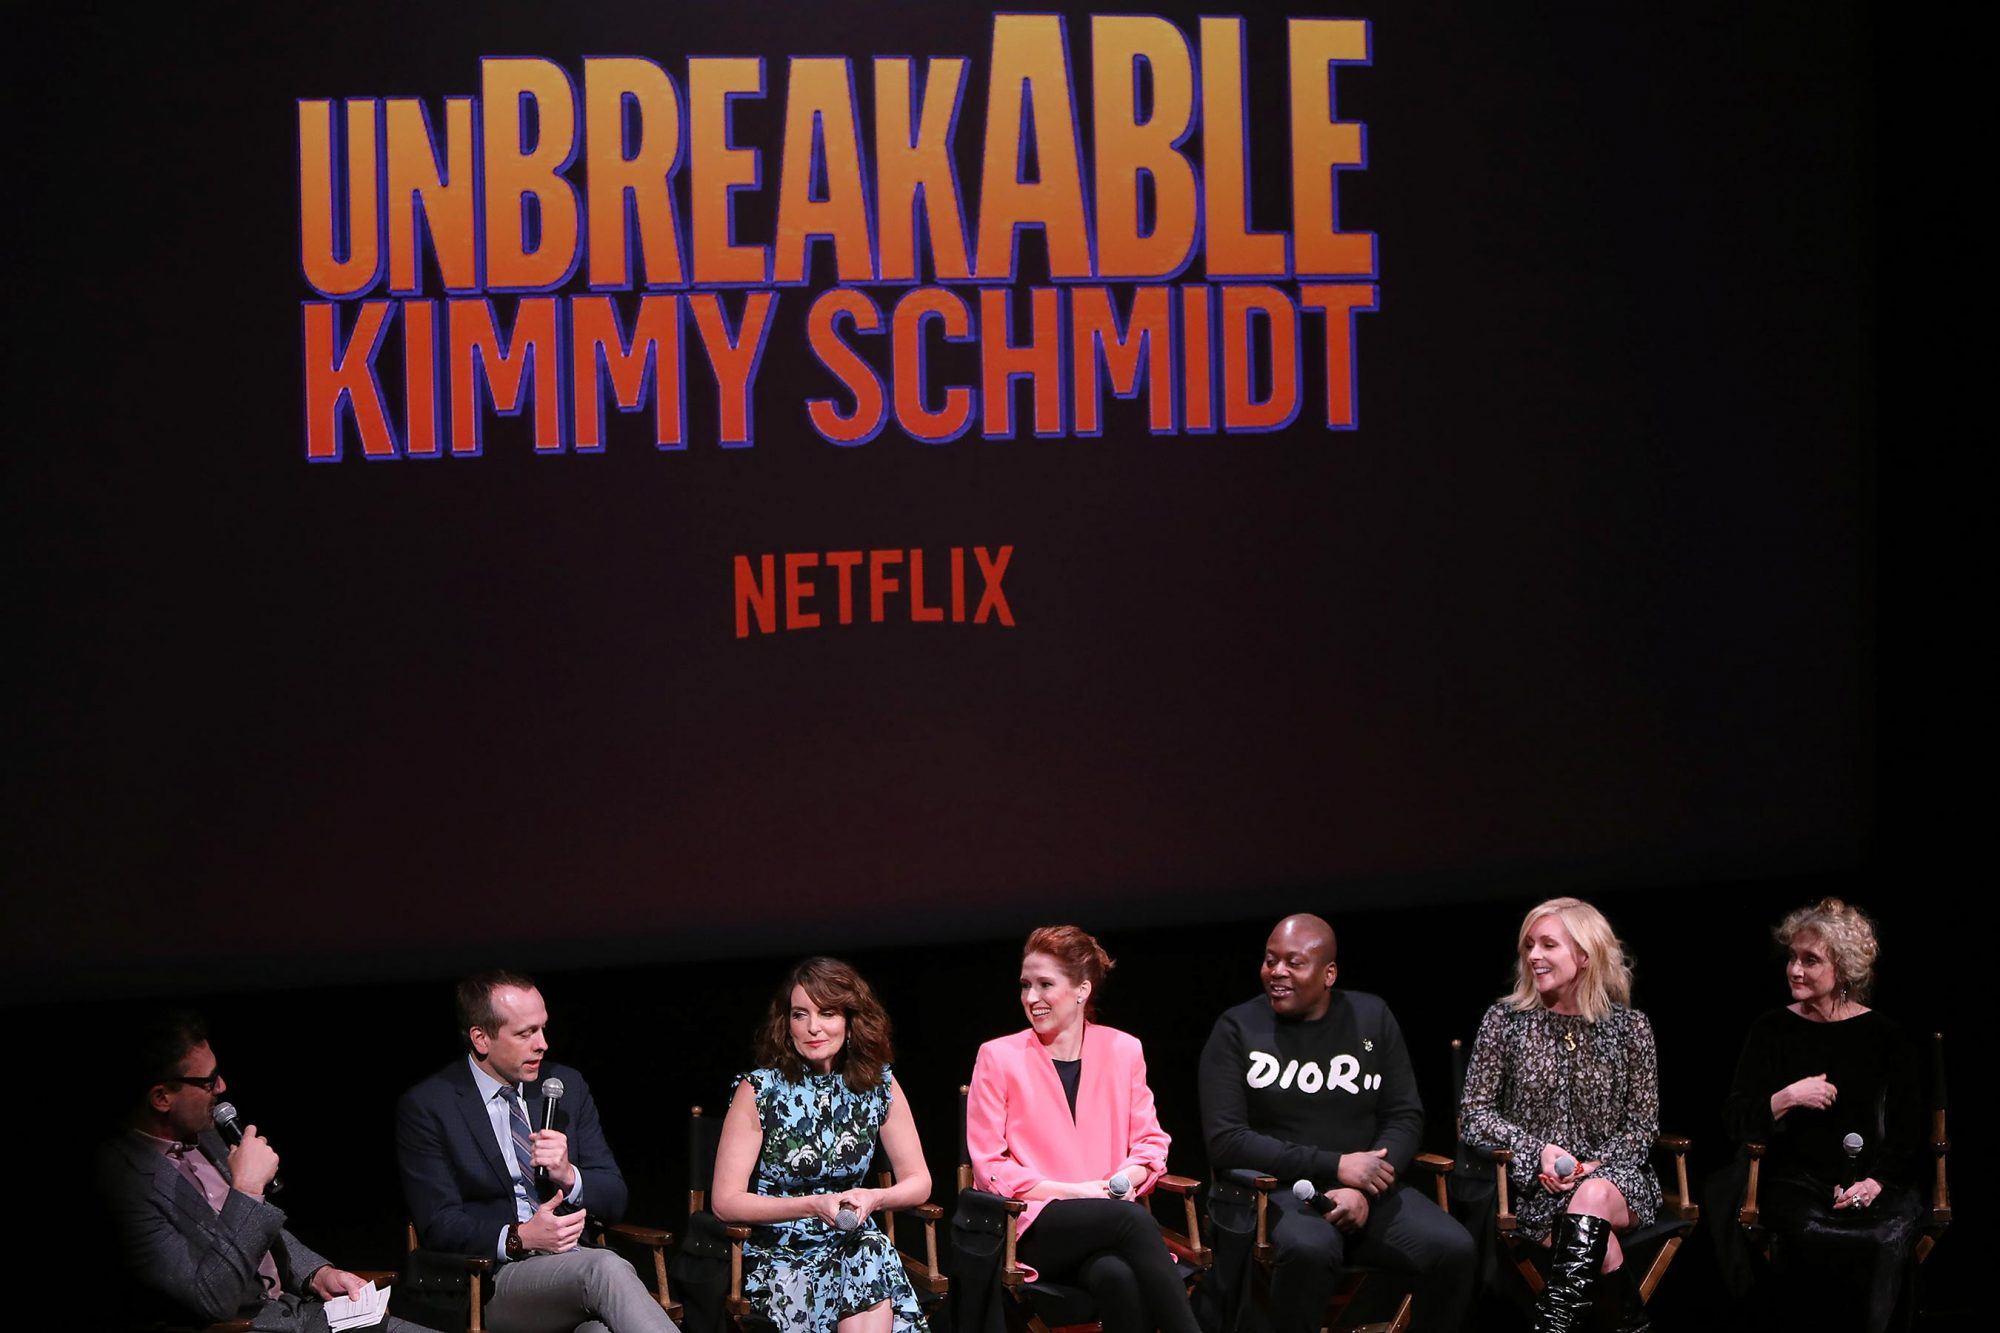 """Unbreakable Kimmy Schmidt"" Screening and Q&A with Cast and Creators"